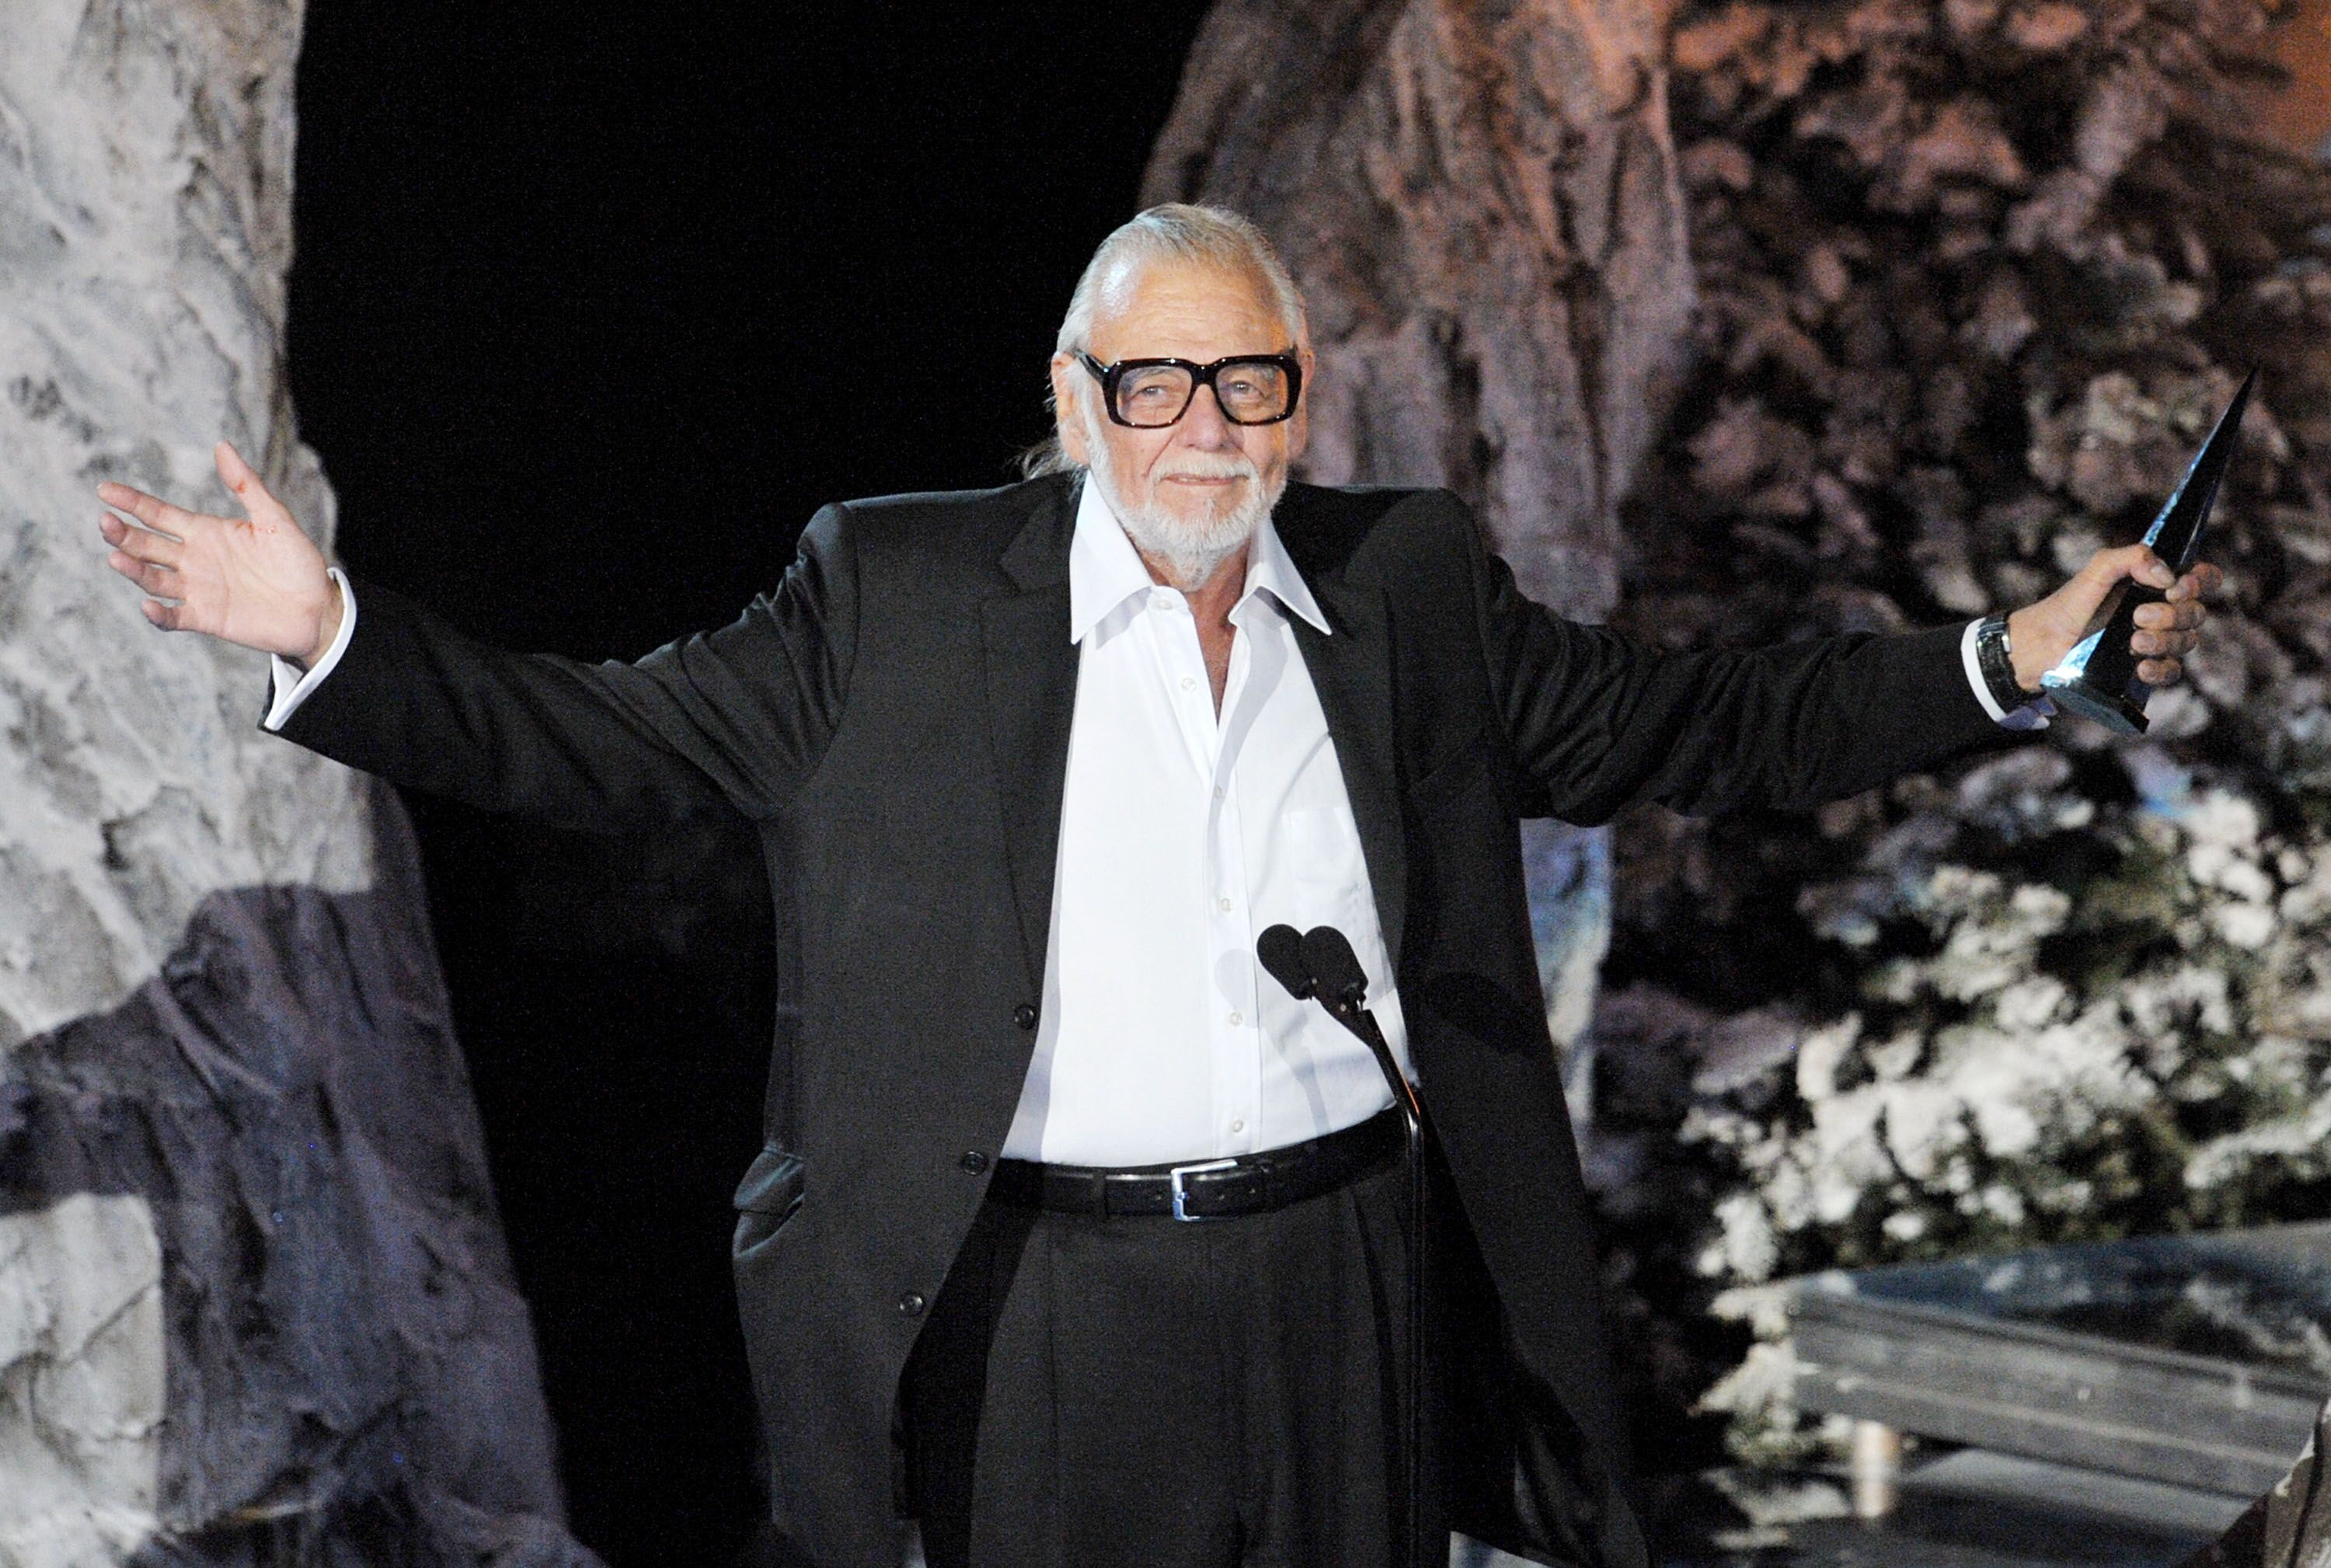 Report: The Walking Dead asked George A. Romero to direct an episode